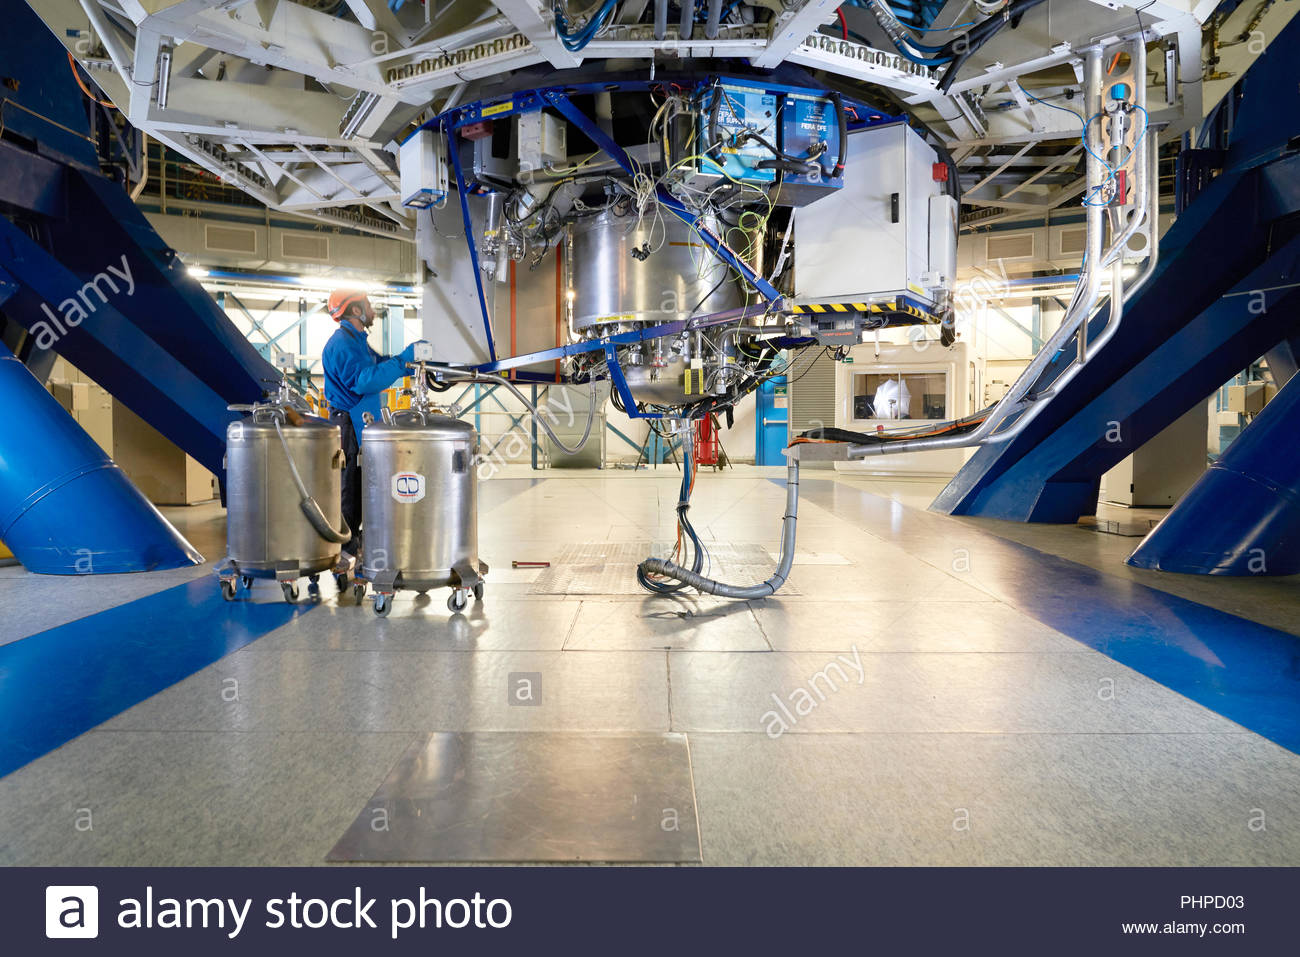 Astronomer adjusting machinery at Paranal Observatory in Chile - Stock Image